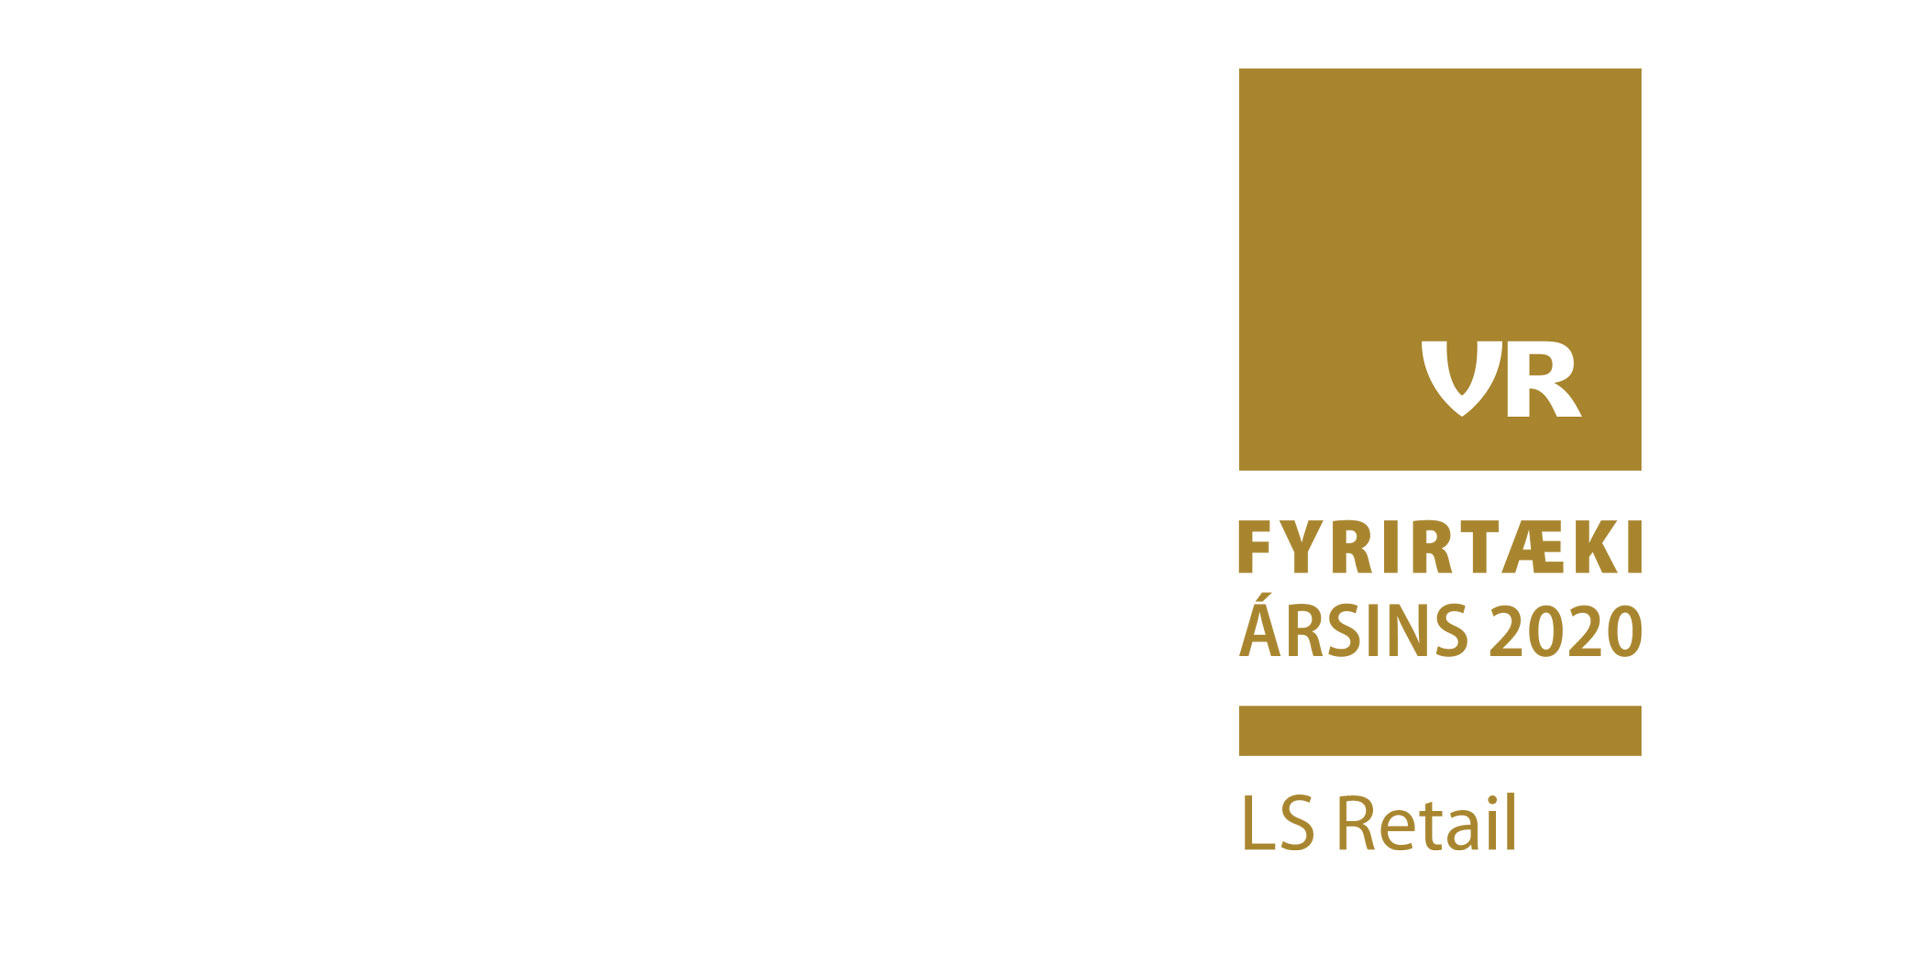 LS Retail awarded Company of the Year 2020